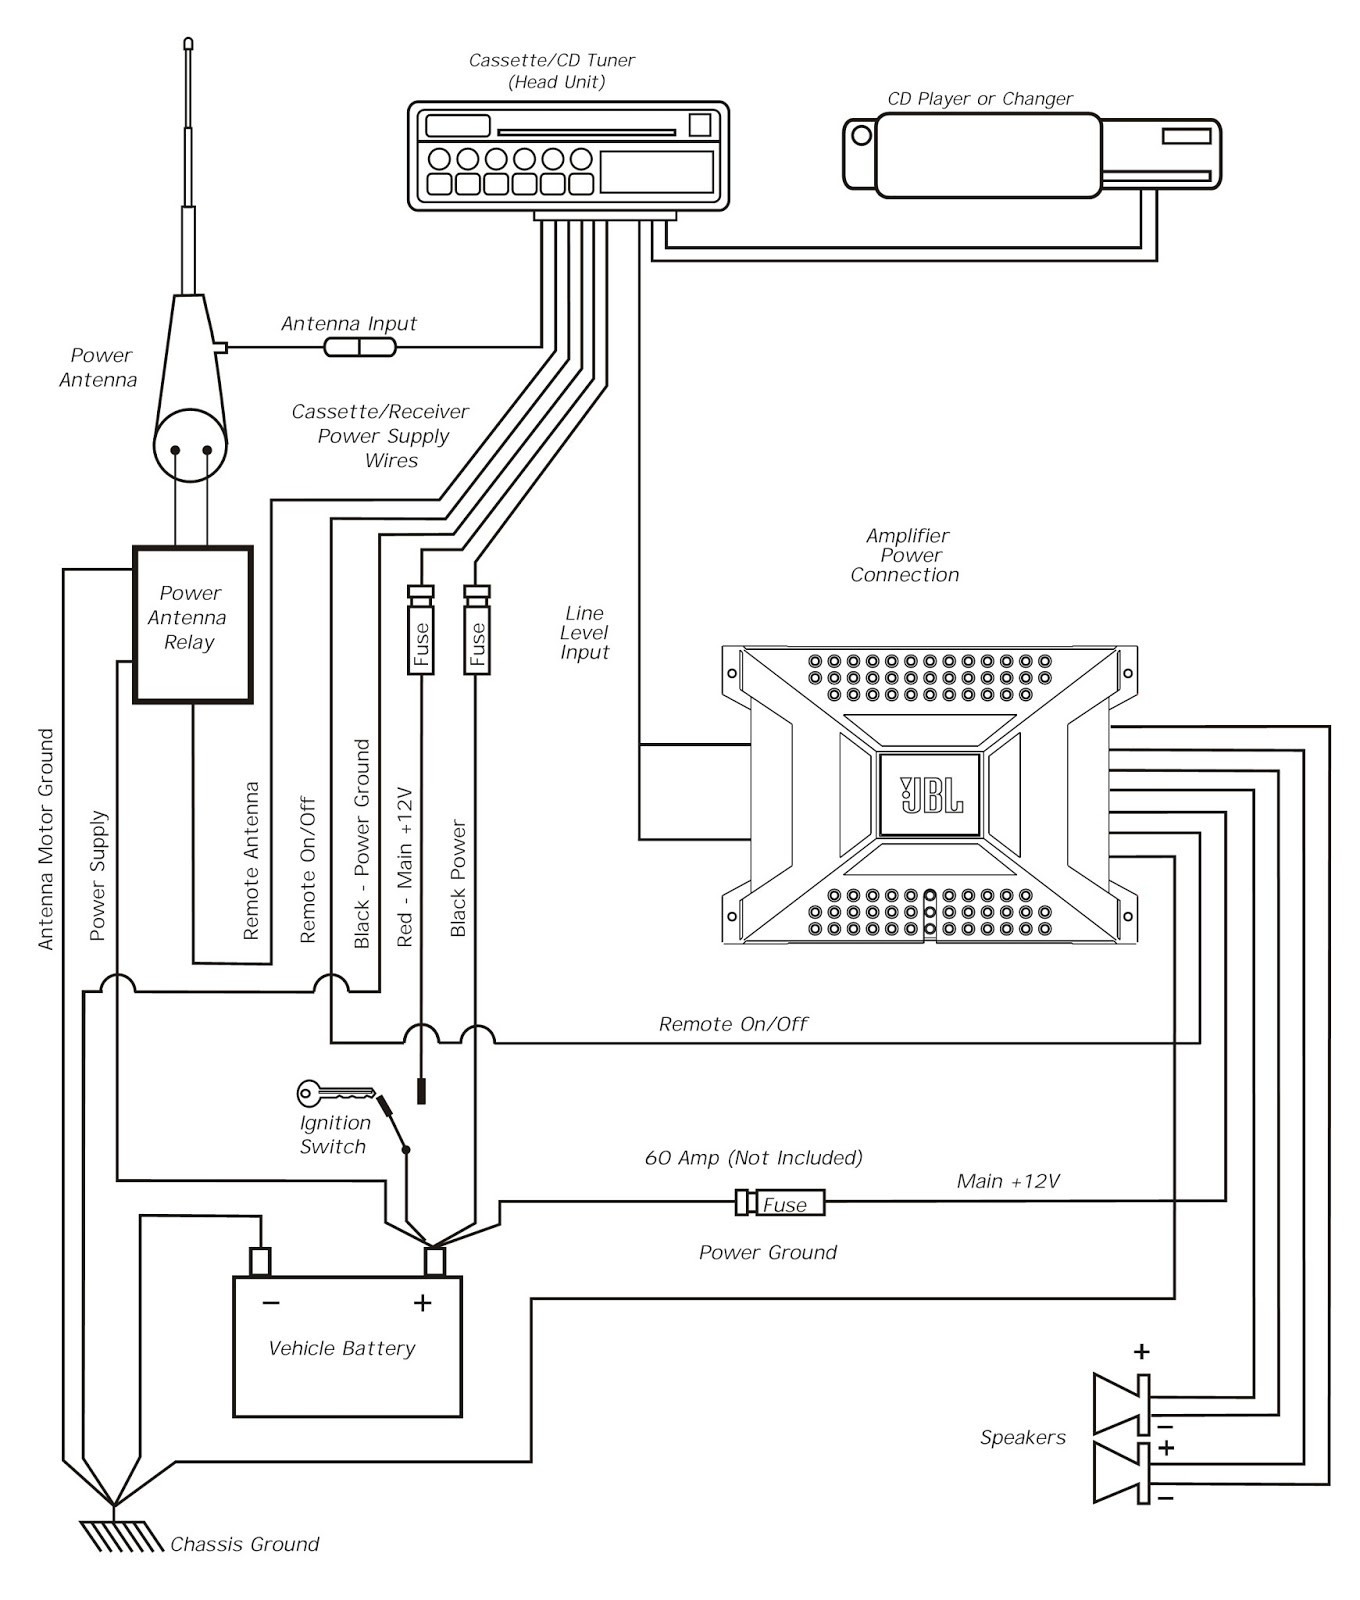 bose amp wiring diagram Download-Wiring Diagram Bose Amp New Copper Internal Basic Wiring 19-o